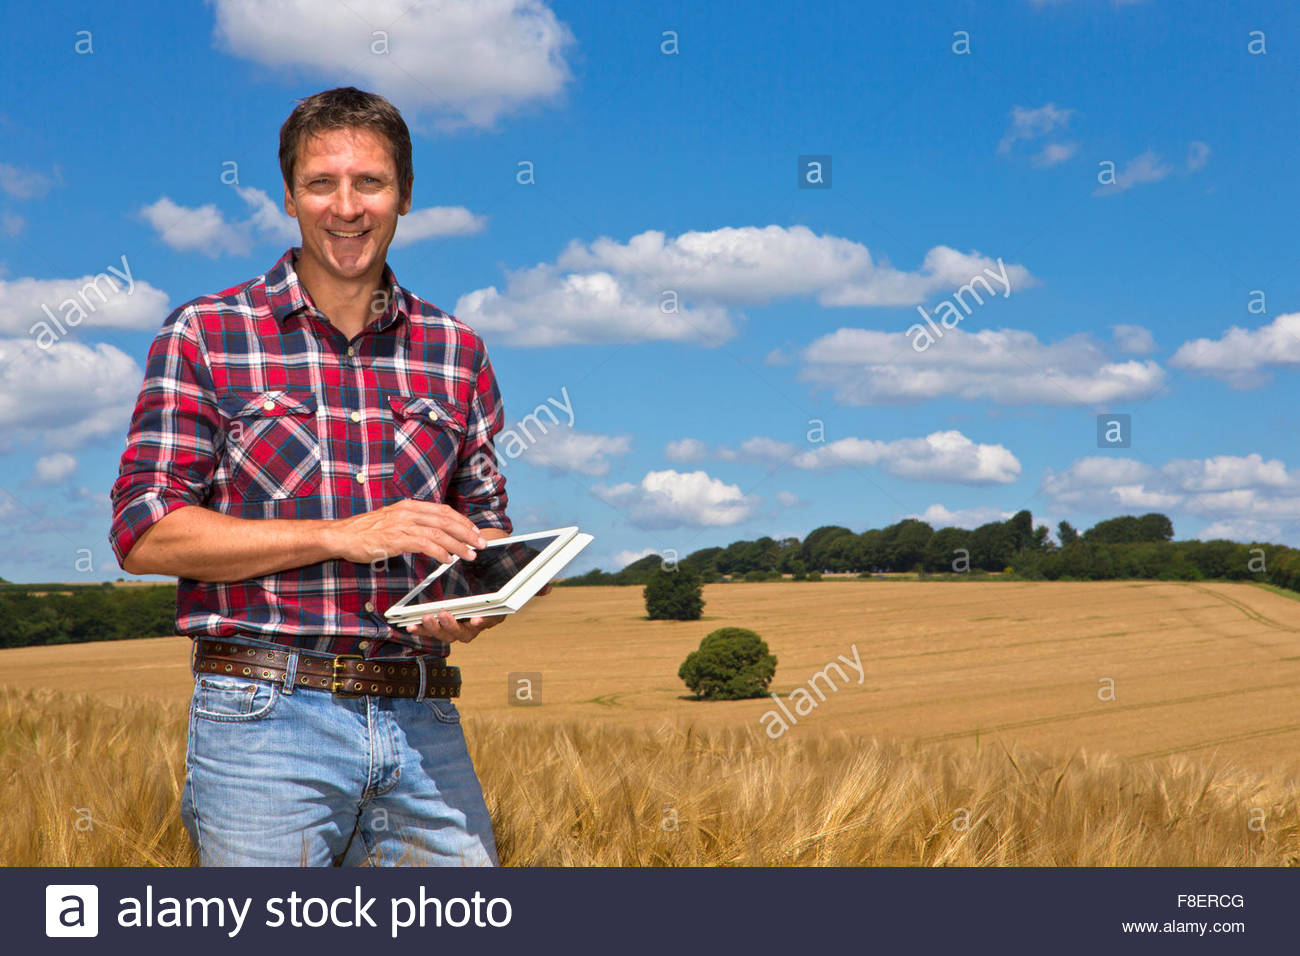 Portrait smiling farmer with digital tablet in sunny rural barley crop field in summer - Stock Image